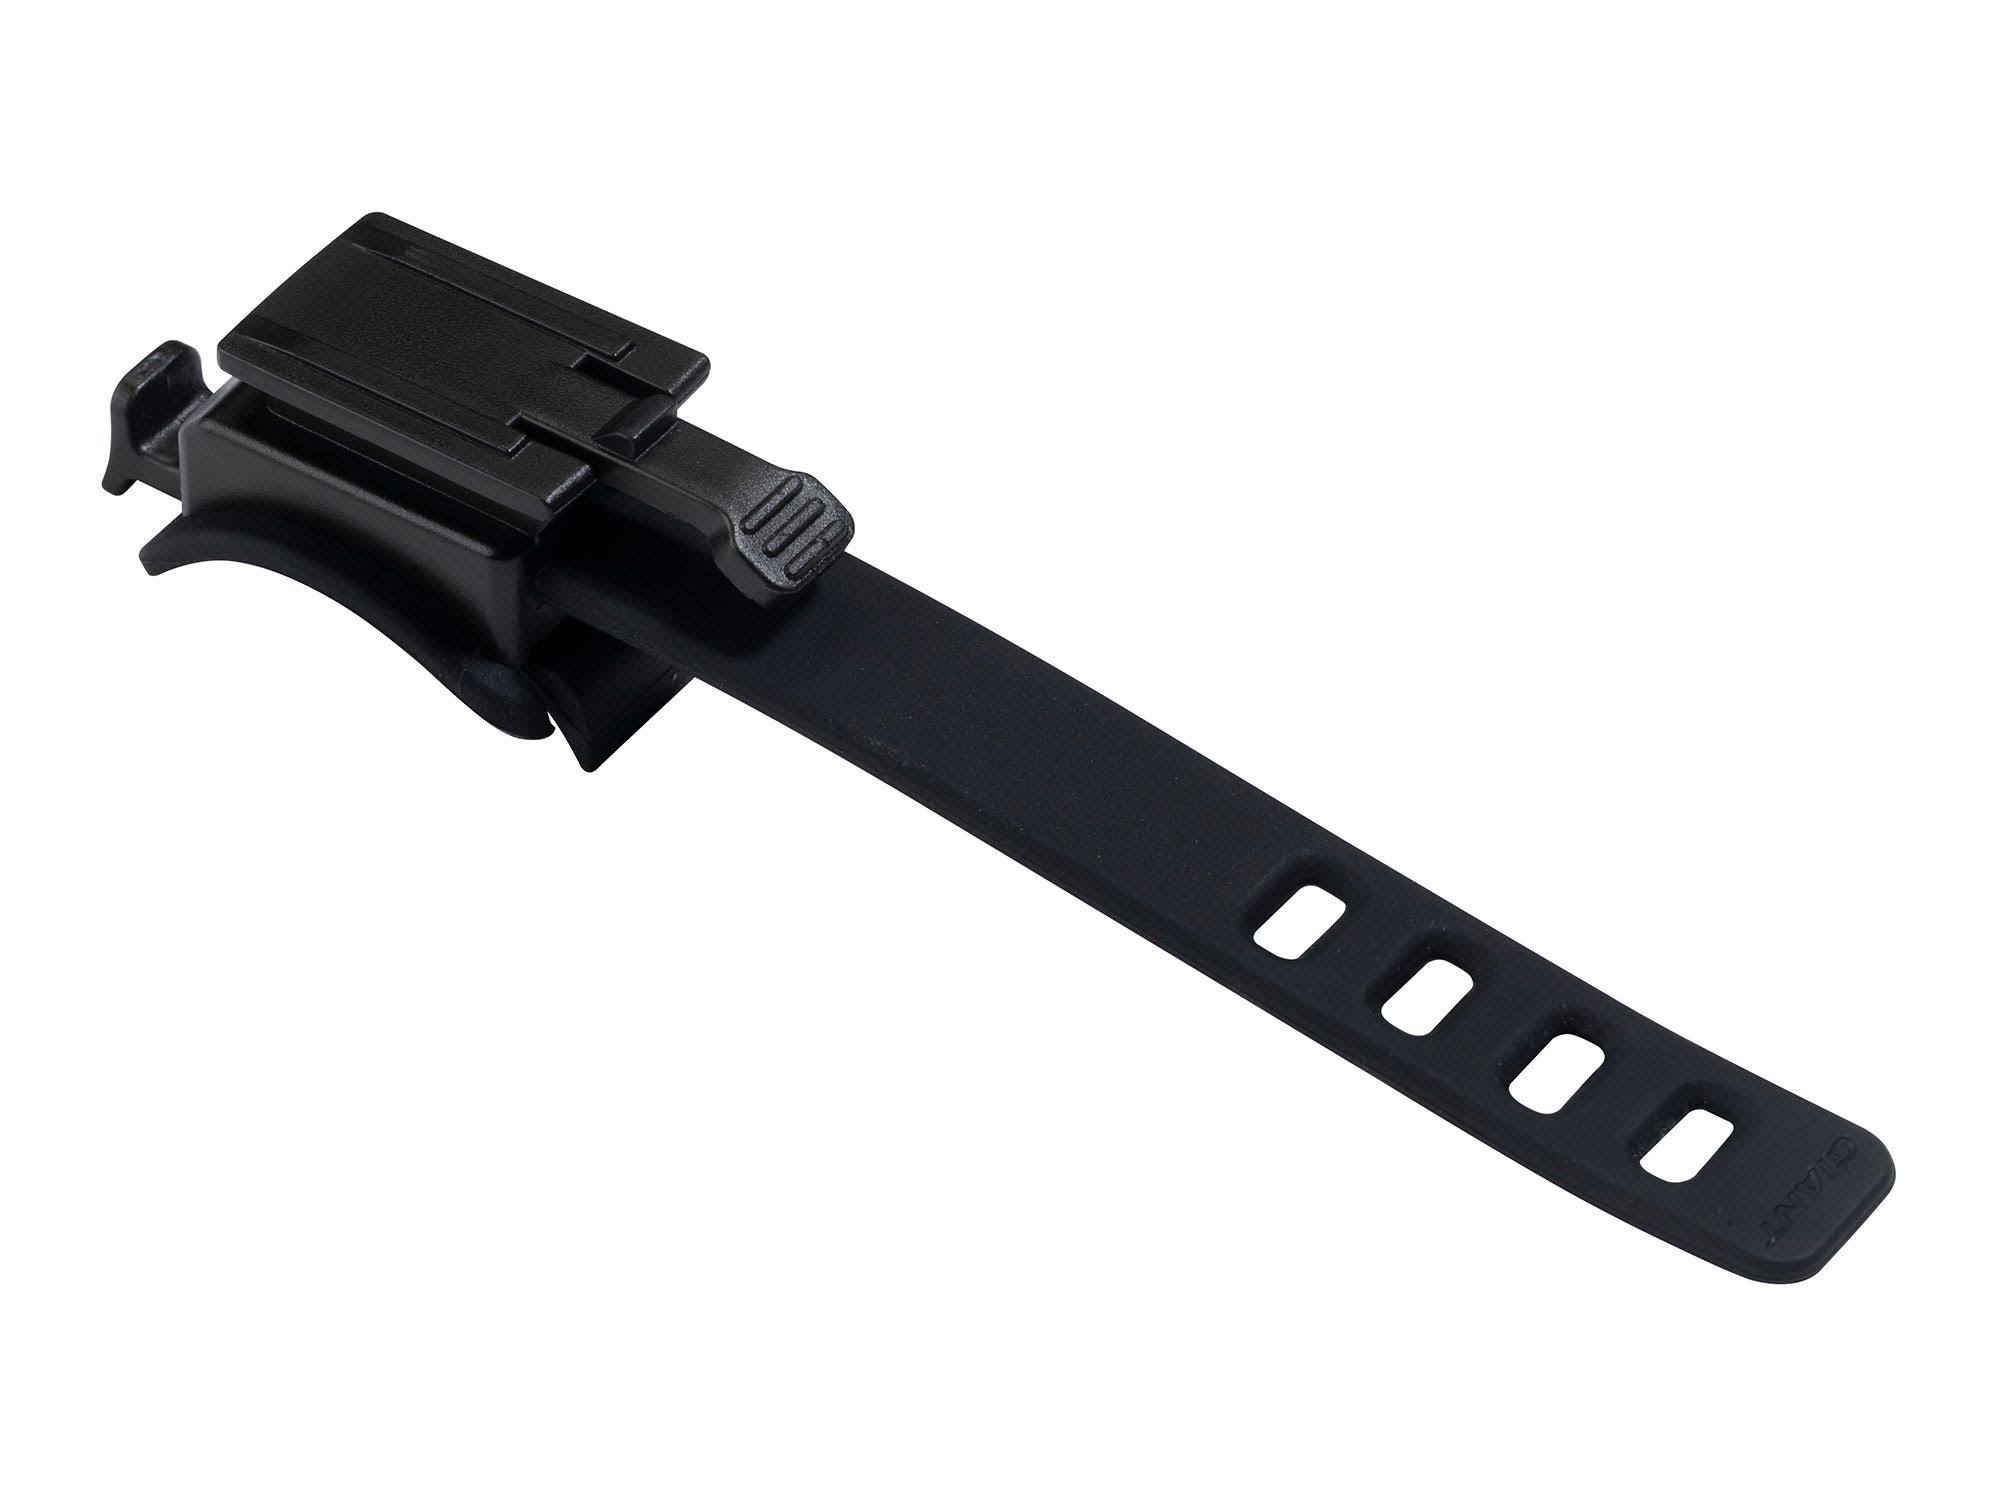 Giant Recon Light Rubber Strap Mount Black